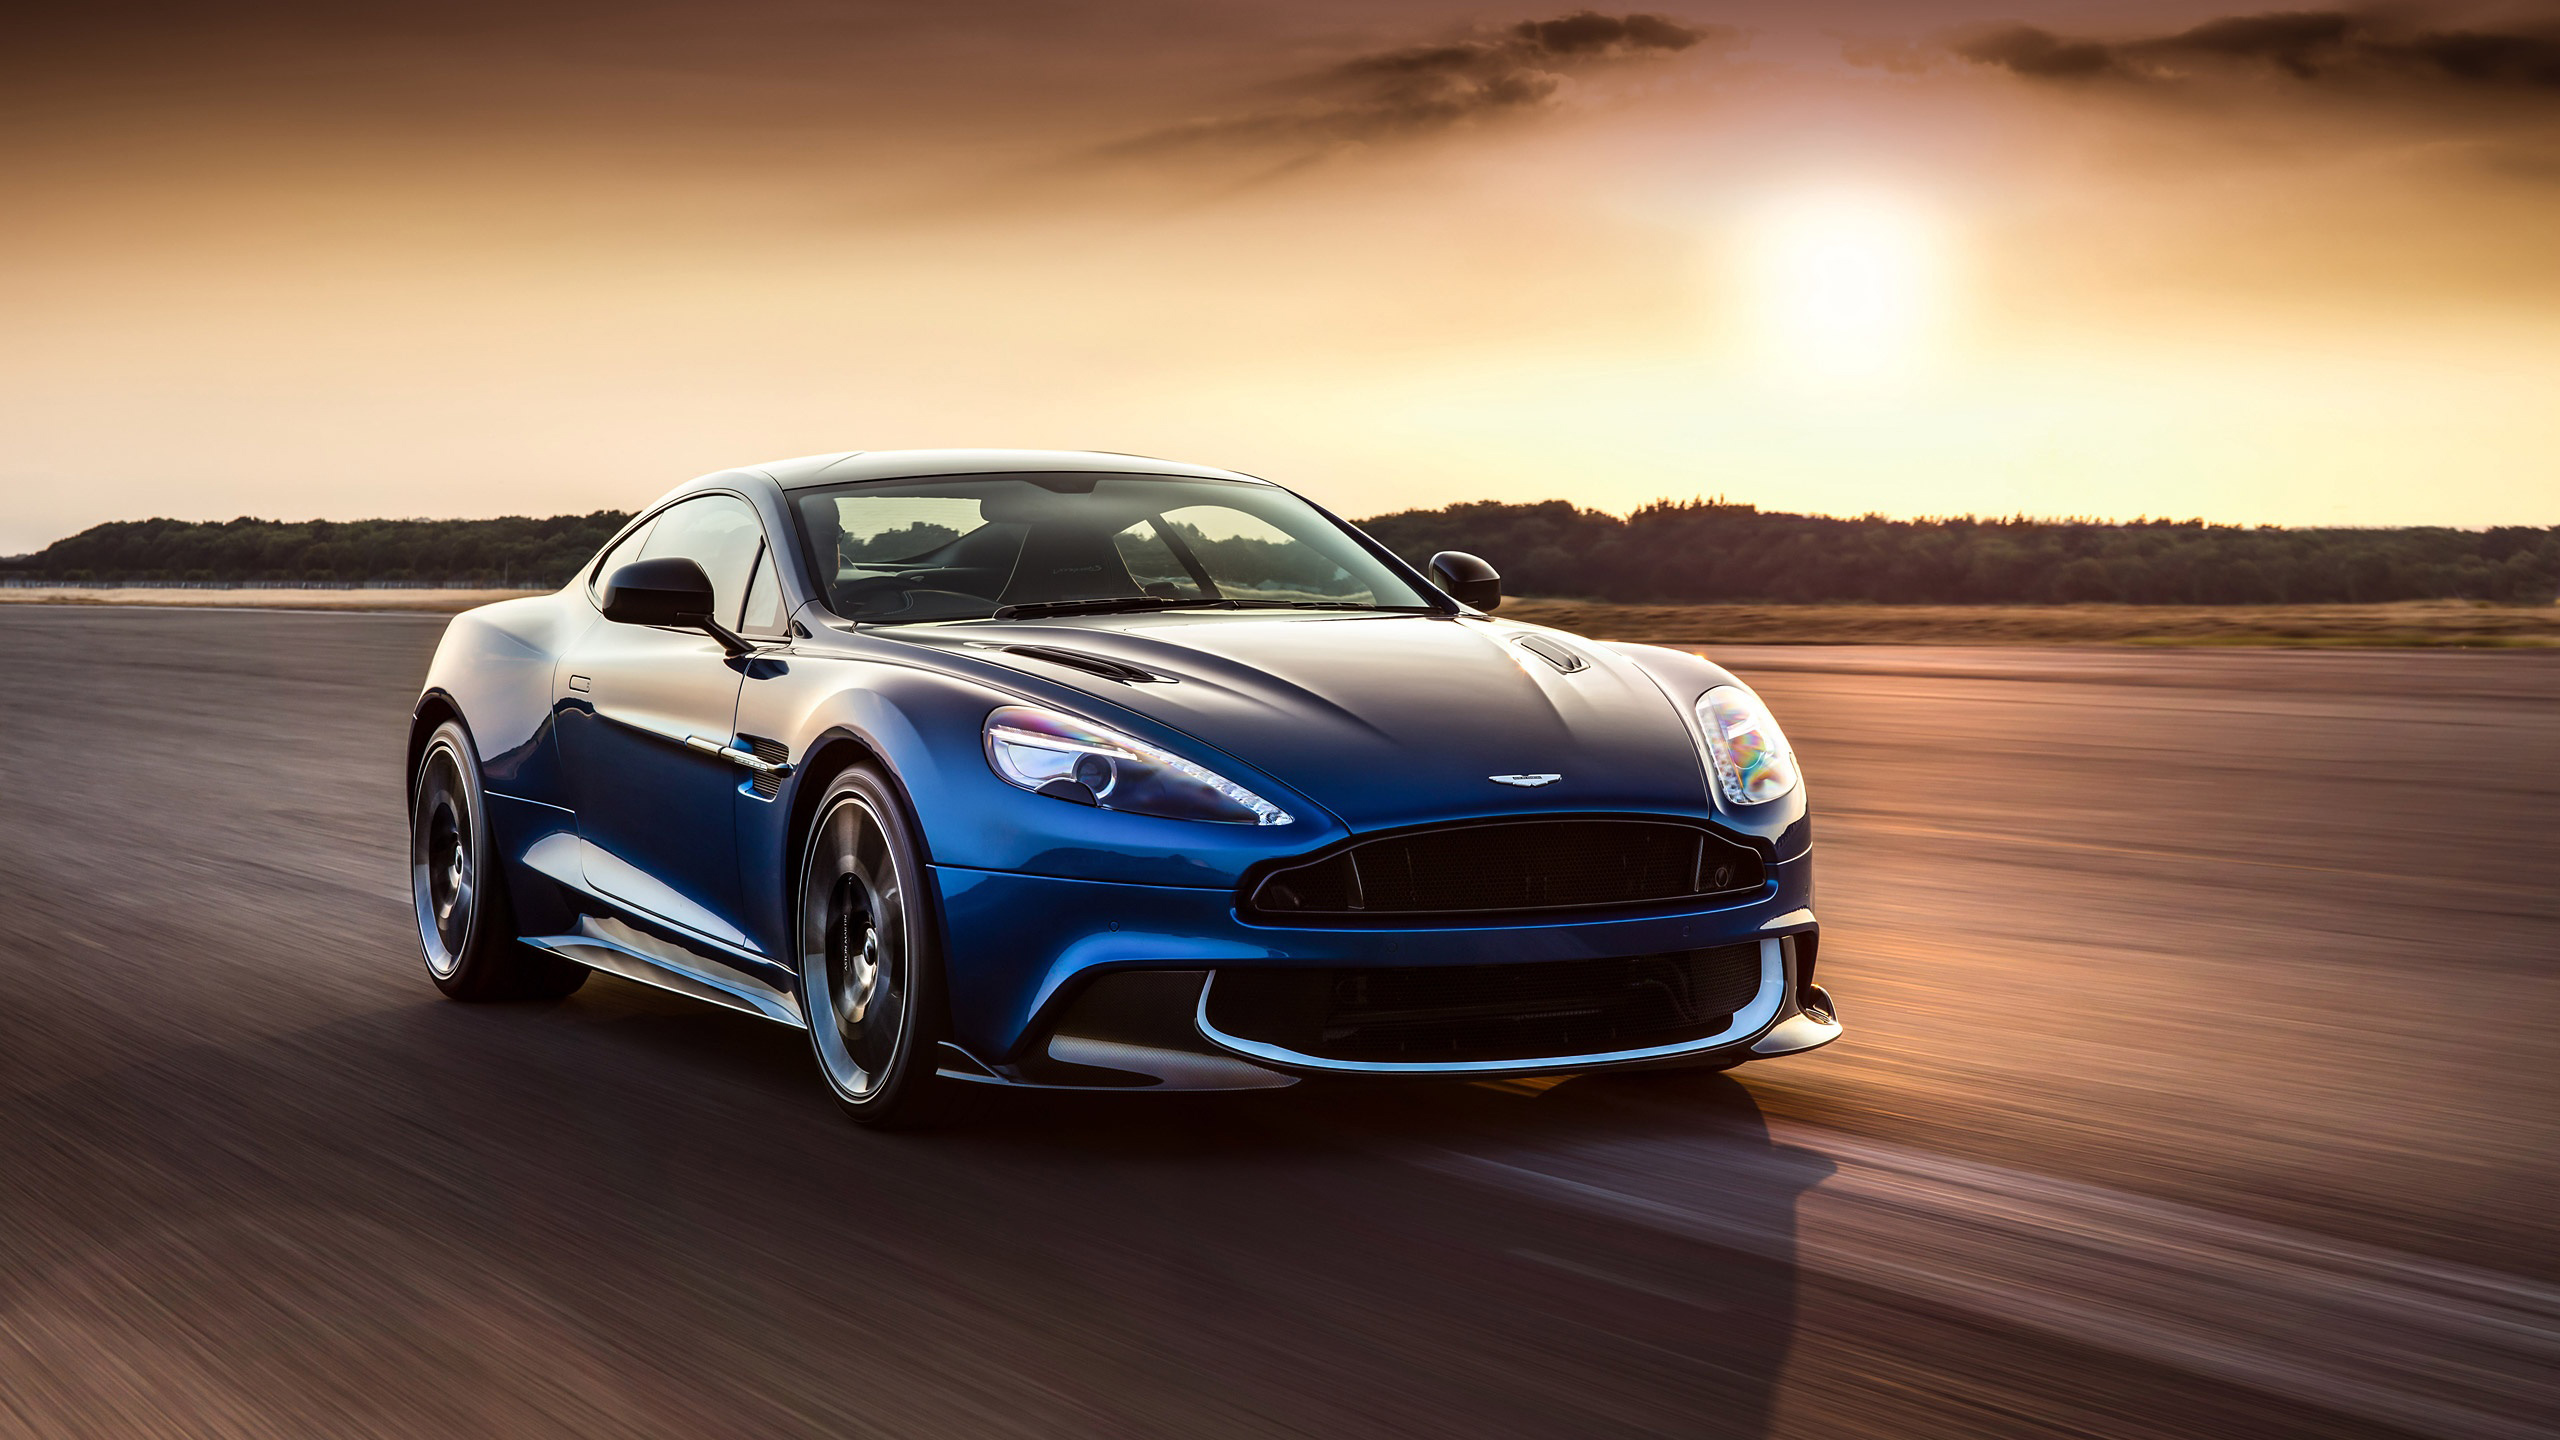 Free Download Aston Martin Vanquish Wallpapers And Background Images Stmednet 2560x1440 For Your Desktop Mobile Tablet Explore 44 Martin Background Martin Wallpaper Martin Background Martin Garrix Wallpapers